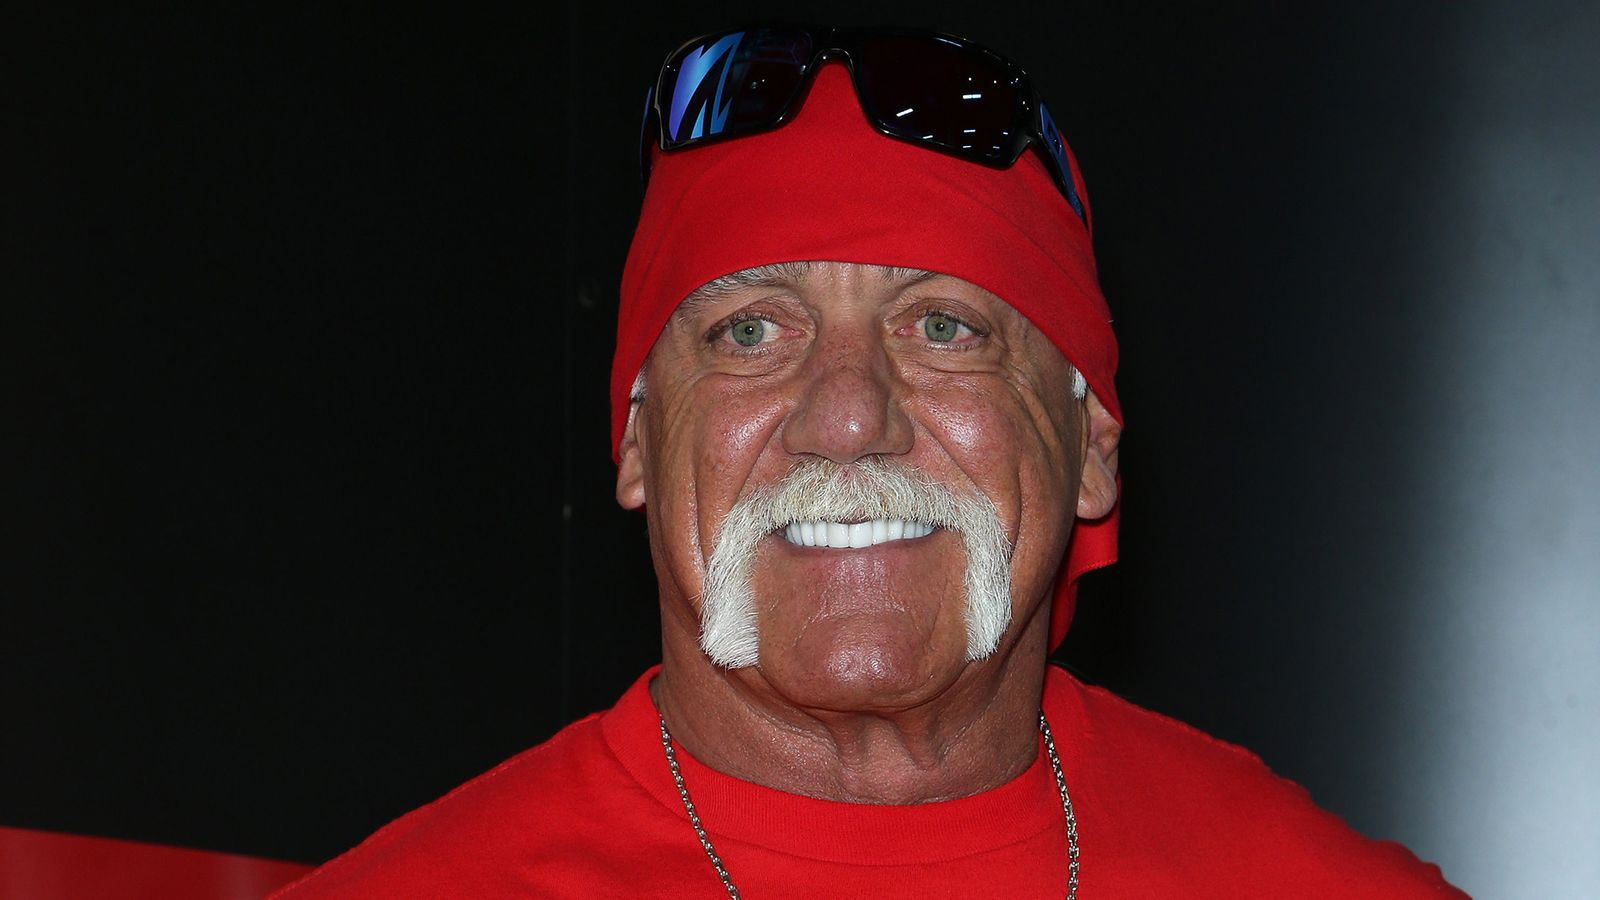 Wwe Hulk Hogan Wwe Fires Hulk Hogan Removes Him From Website Following